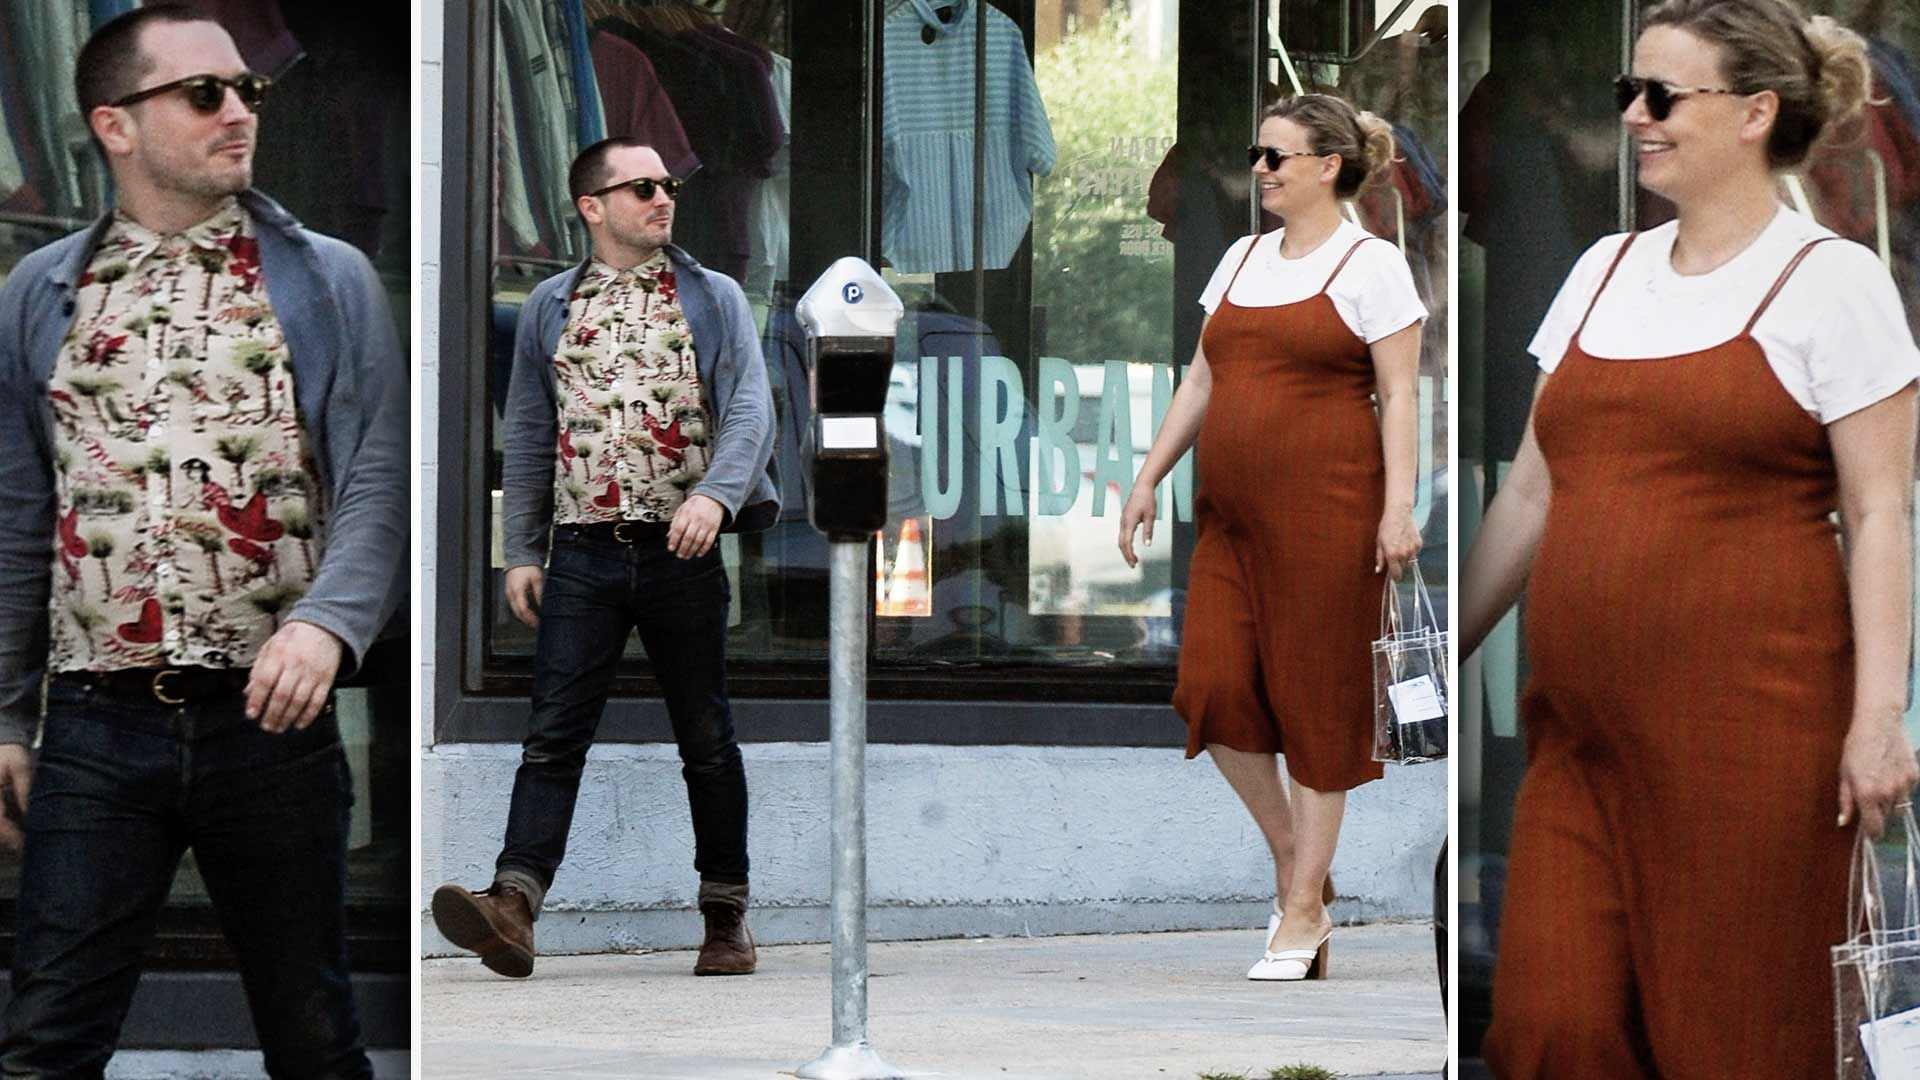 Elijah Wood Seen Out With His Pregnant Filmmaker Girlfriend